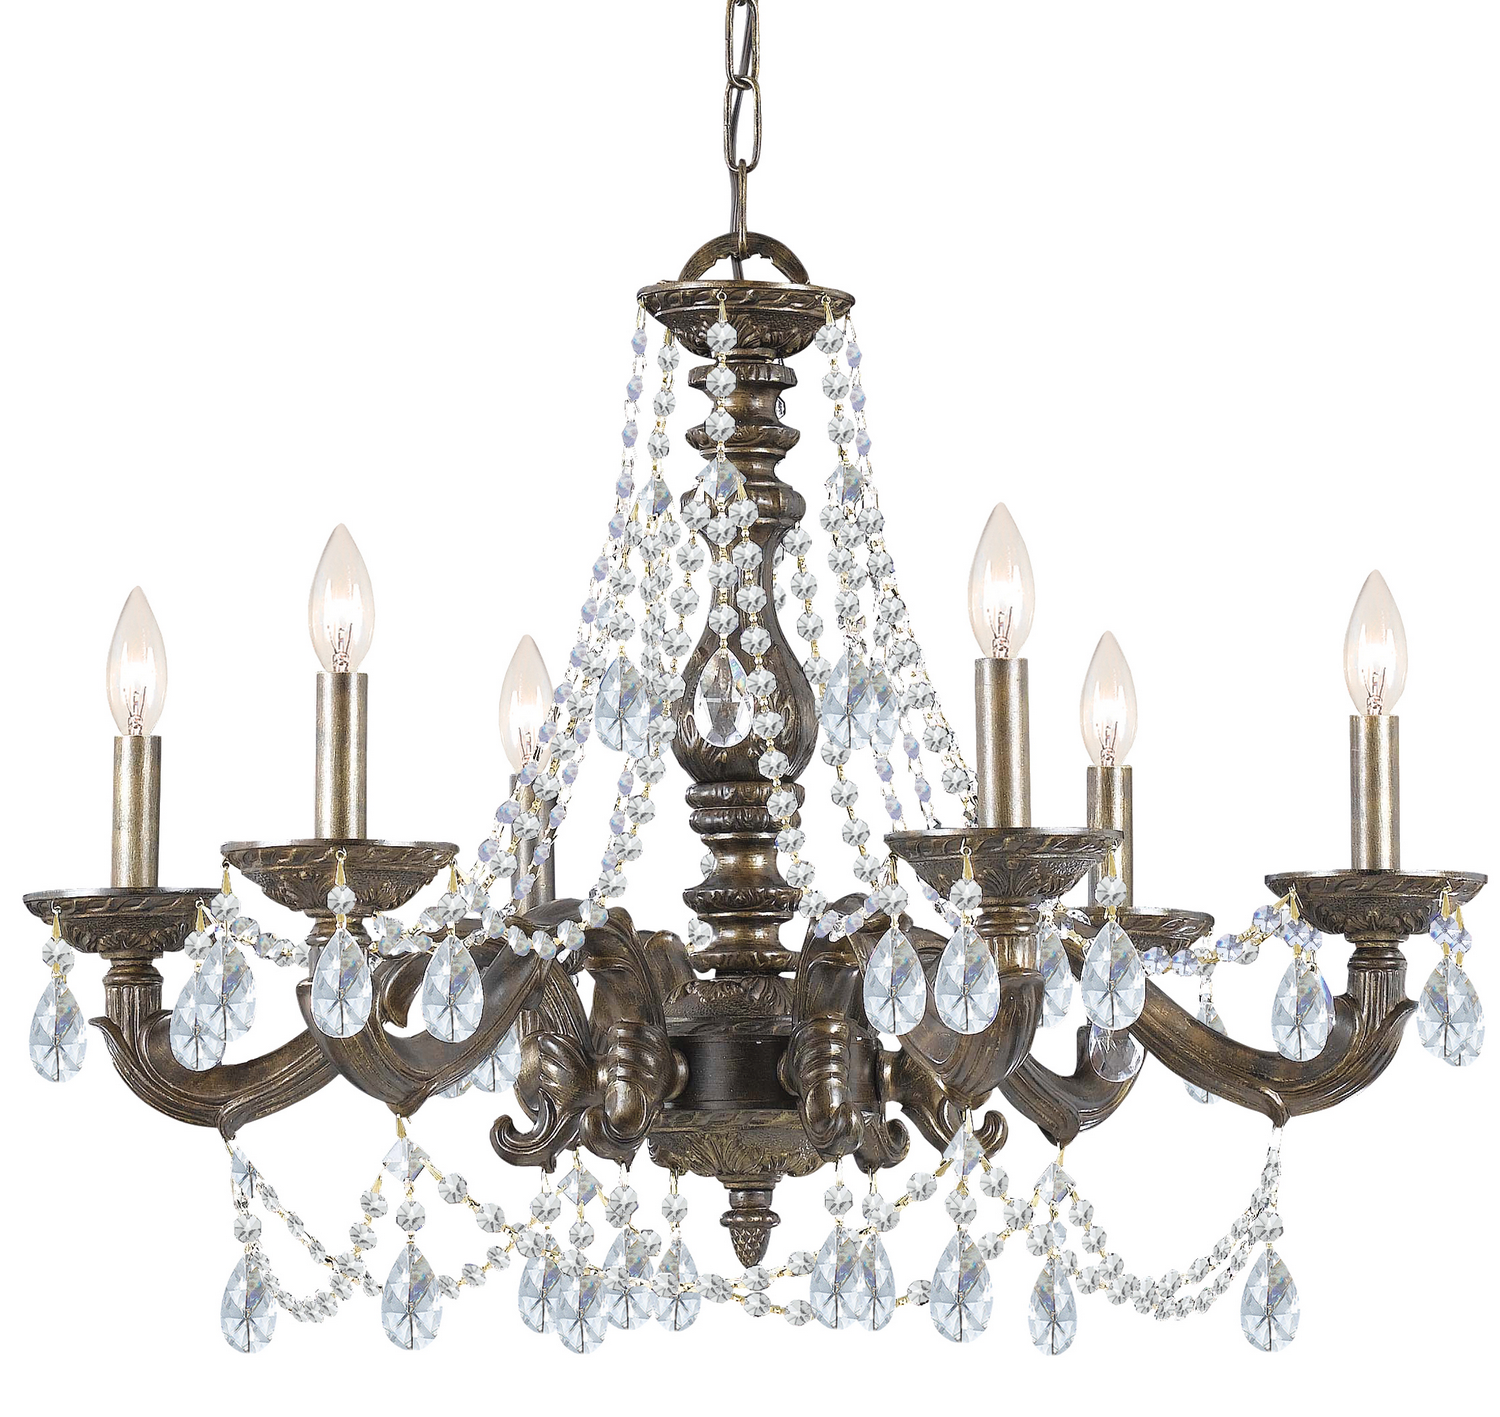 shabby chic lighting. Crystorama Paris Market Series Chandeliers Shabby Chic Lighting F